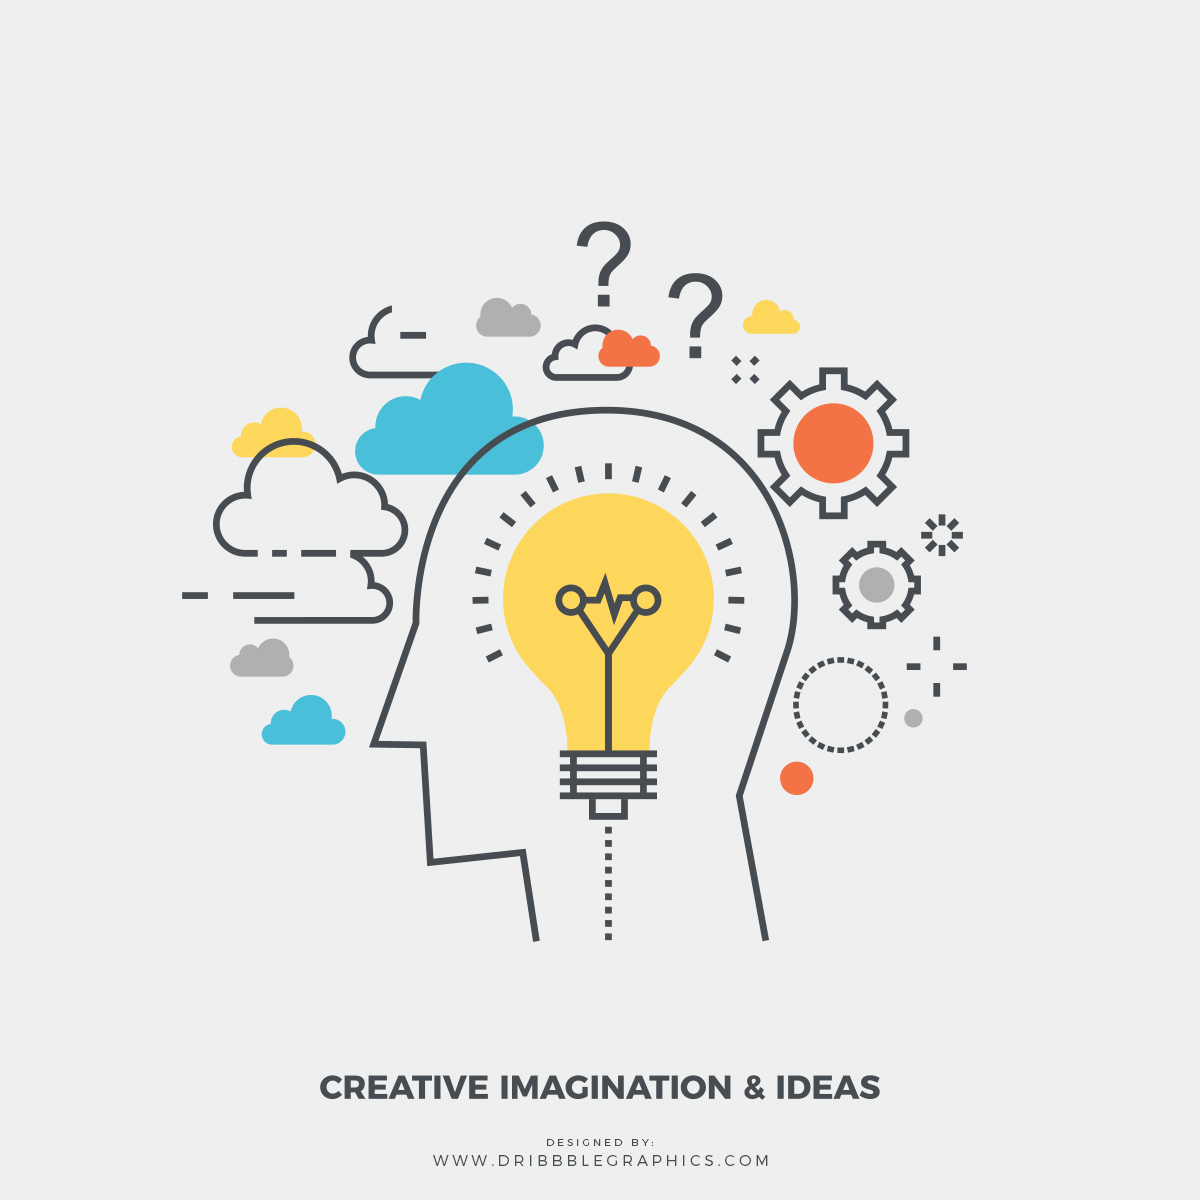 Free-Creative-Imagination-&-Ideas-Vector-Illustration